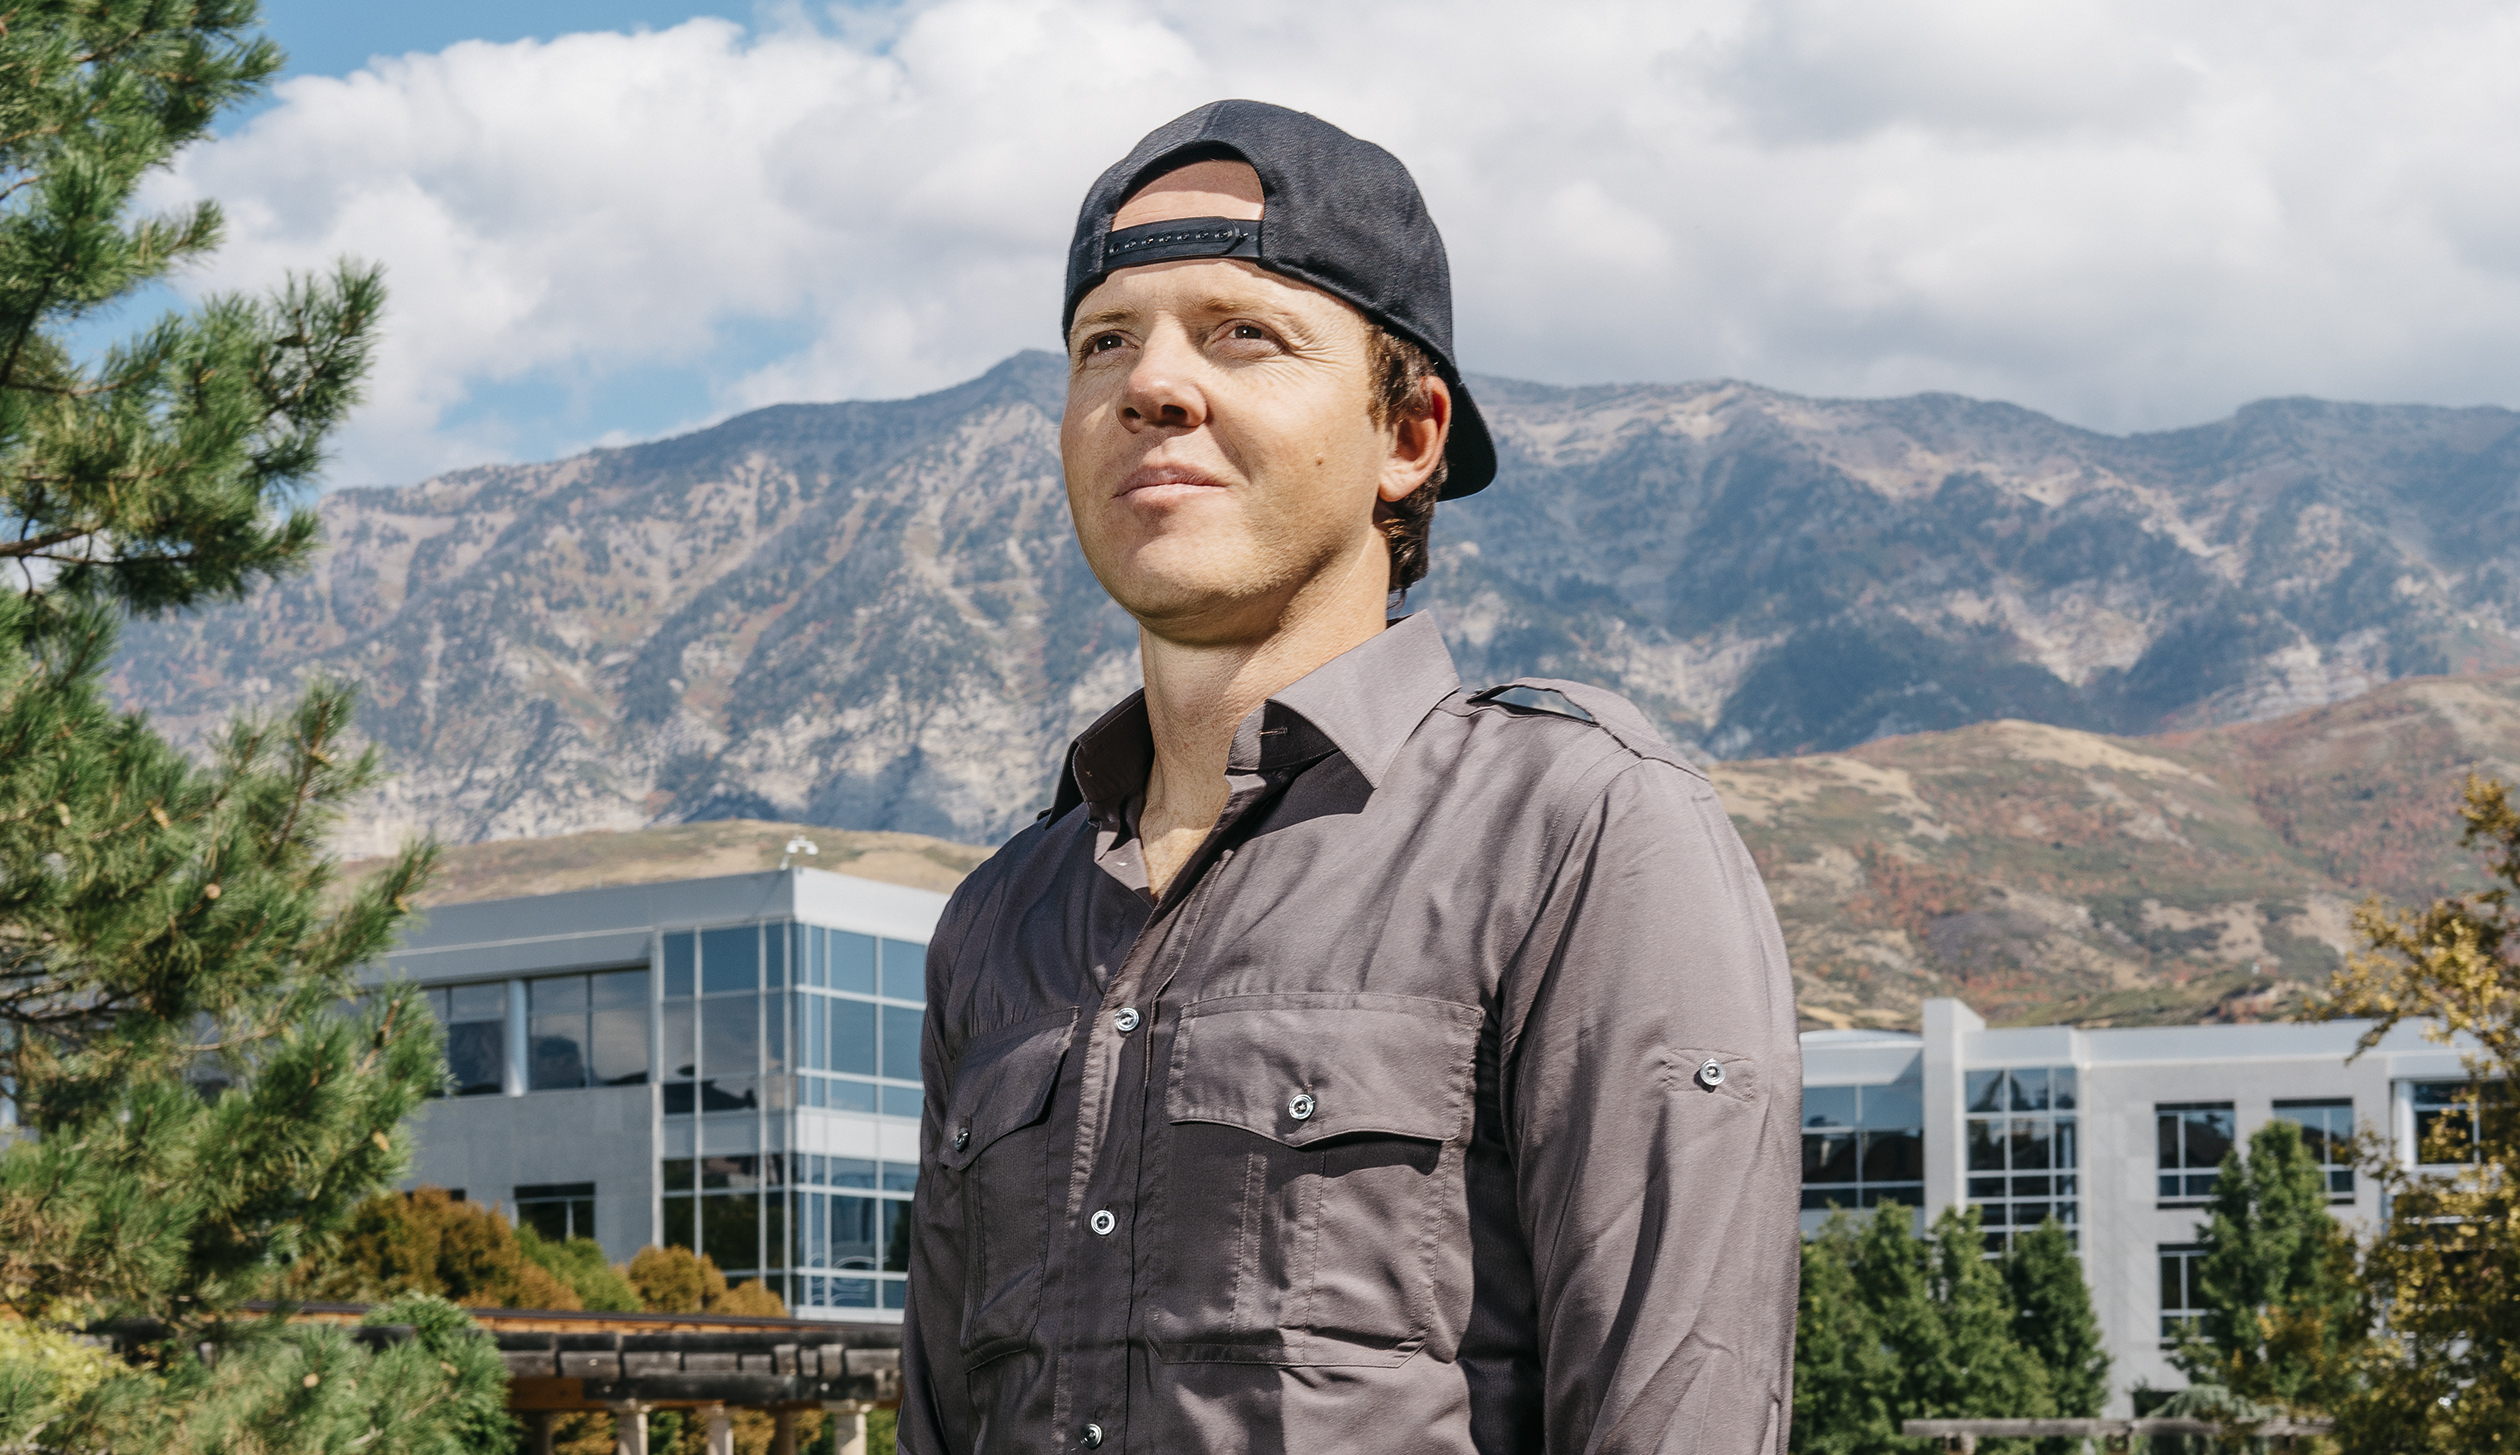 Ryan Smith, CEO of Qualtrics, in front of his company's headquarters in Provo, Utah.